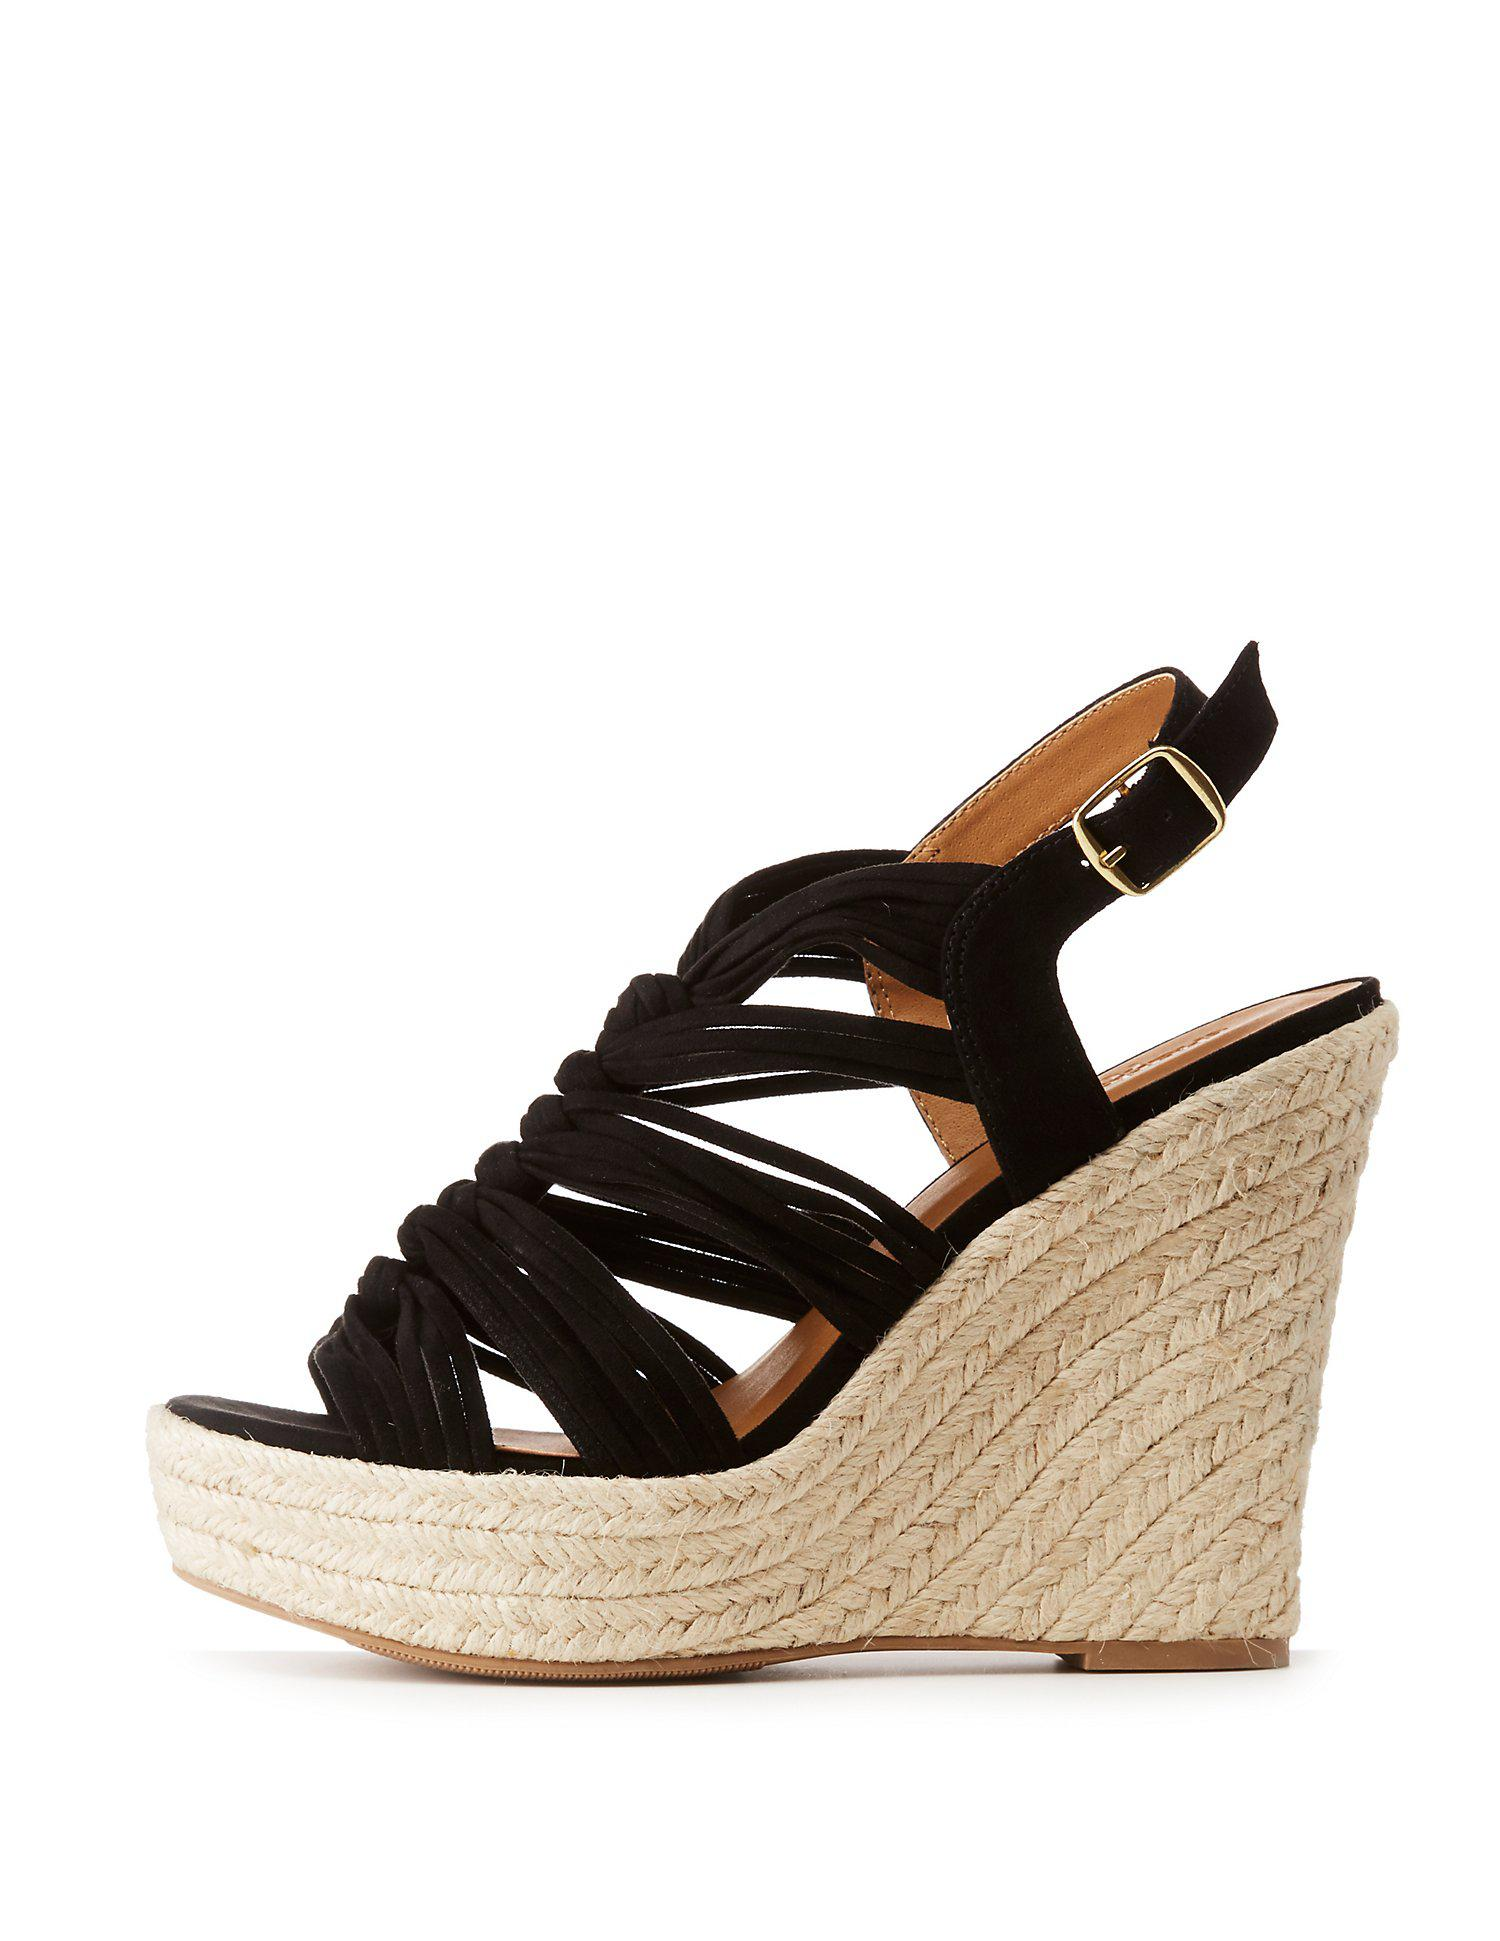 9818c9f78d9 Lyst - Charlotte Russe Espadrille Wedge Strappy Sandals in Black